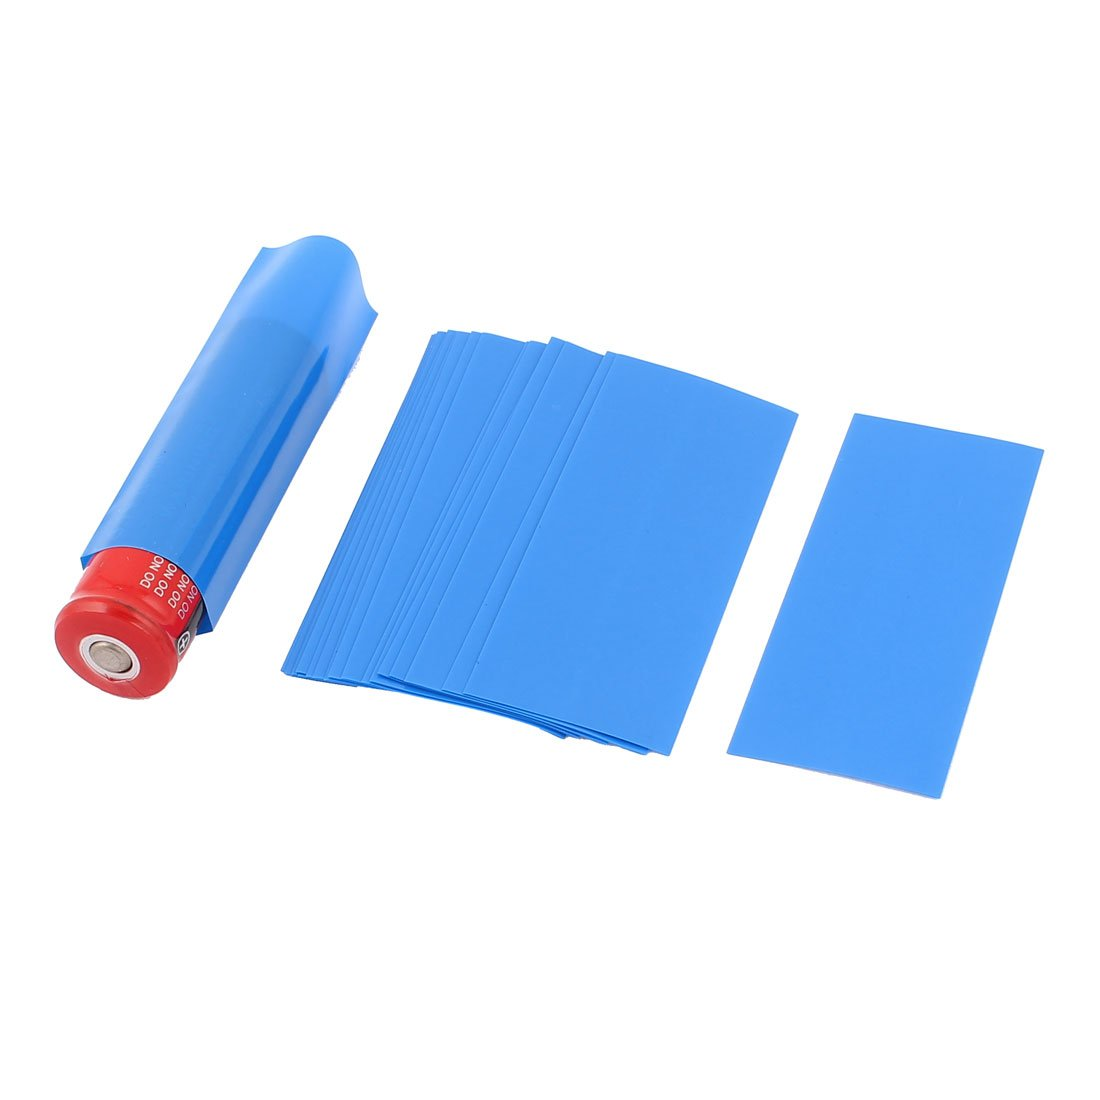 uxcell a15060100ux0642 20 Pcs 18.5mm Dia PVC Heat Shrink Tubing Blue for 1 x 18650/18500 Battery (Pack of 20)